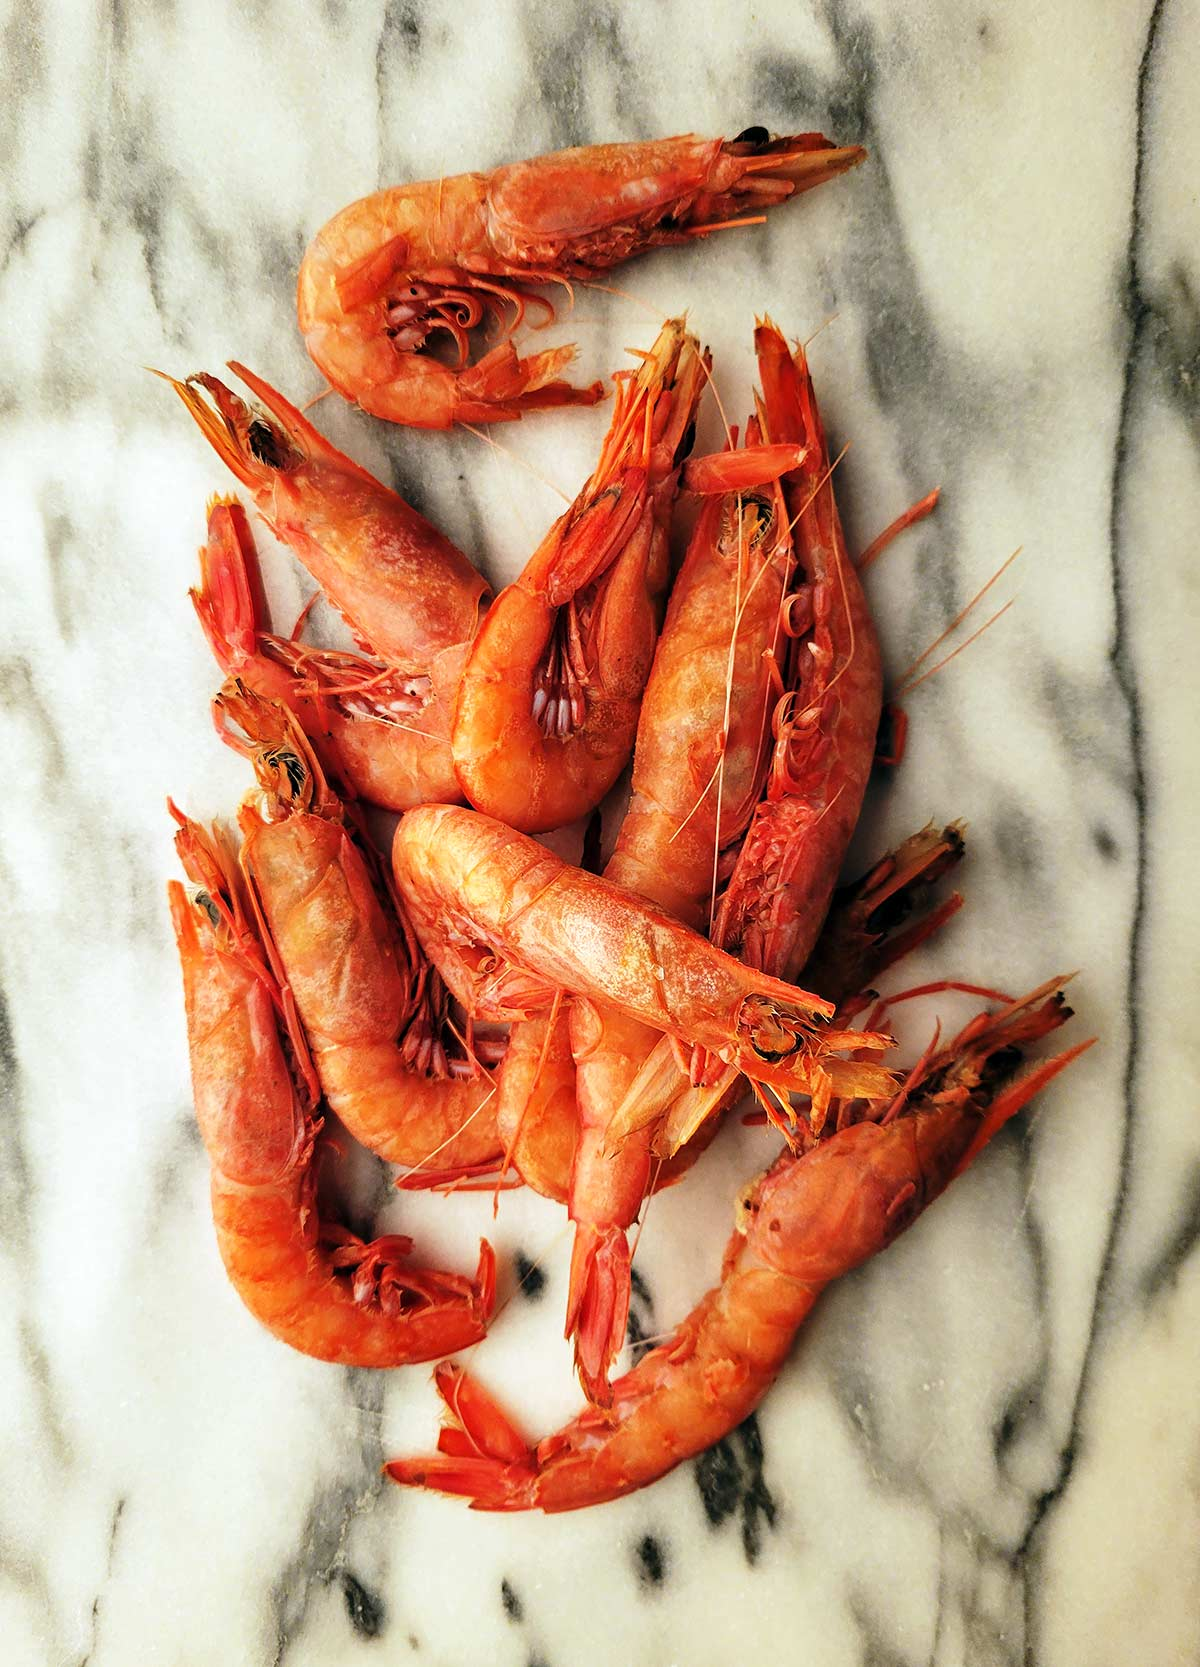 Pretty royal red shrimp, uncooked on a piece of marble.